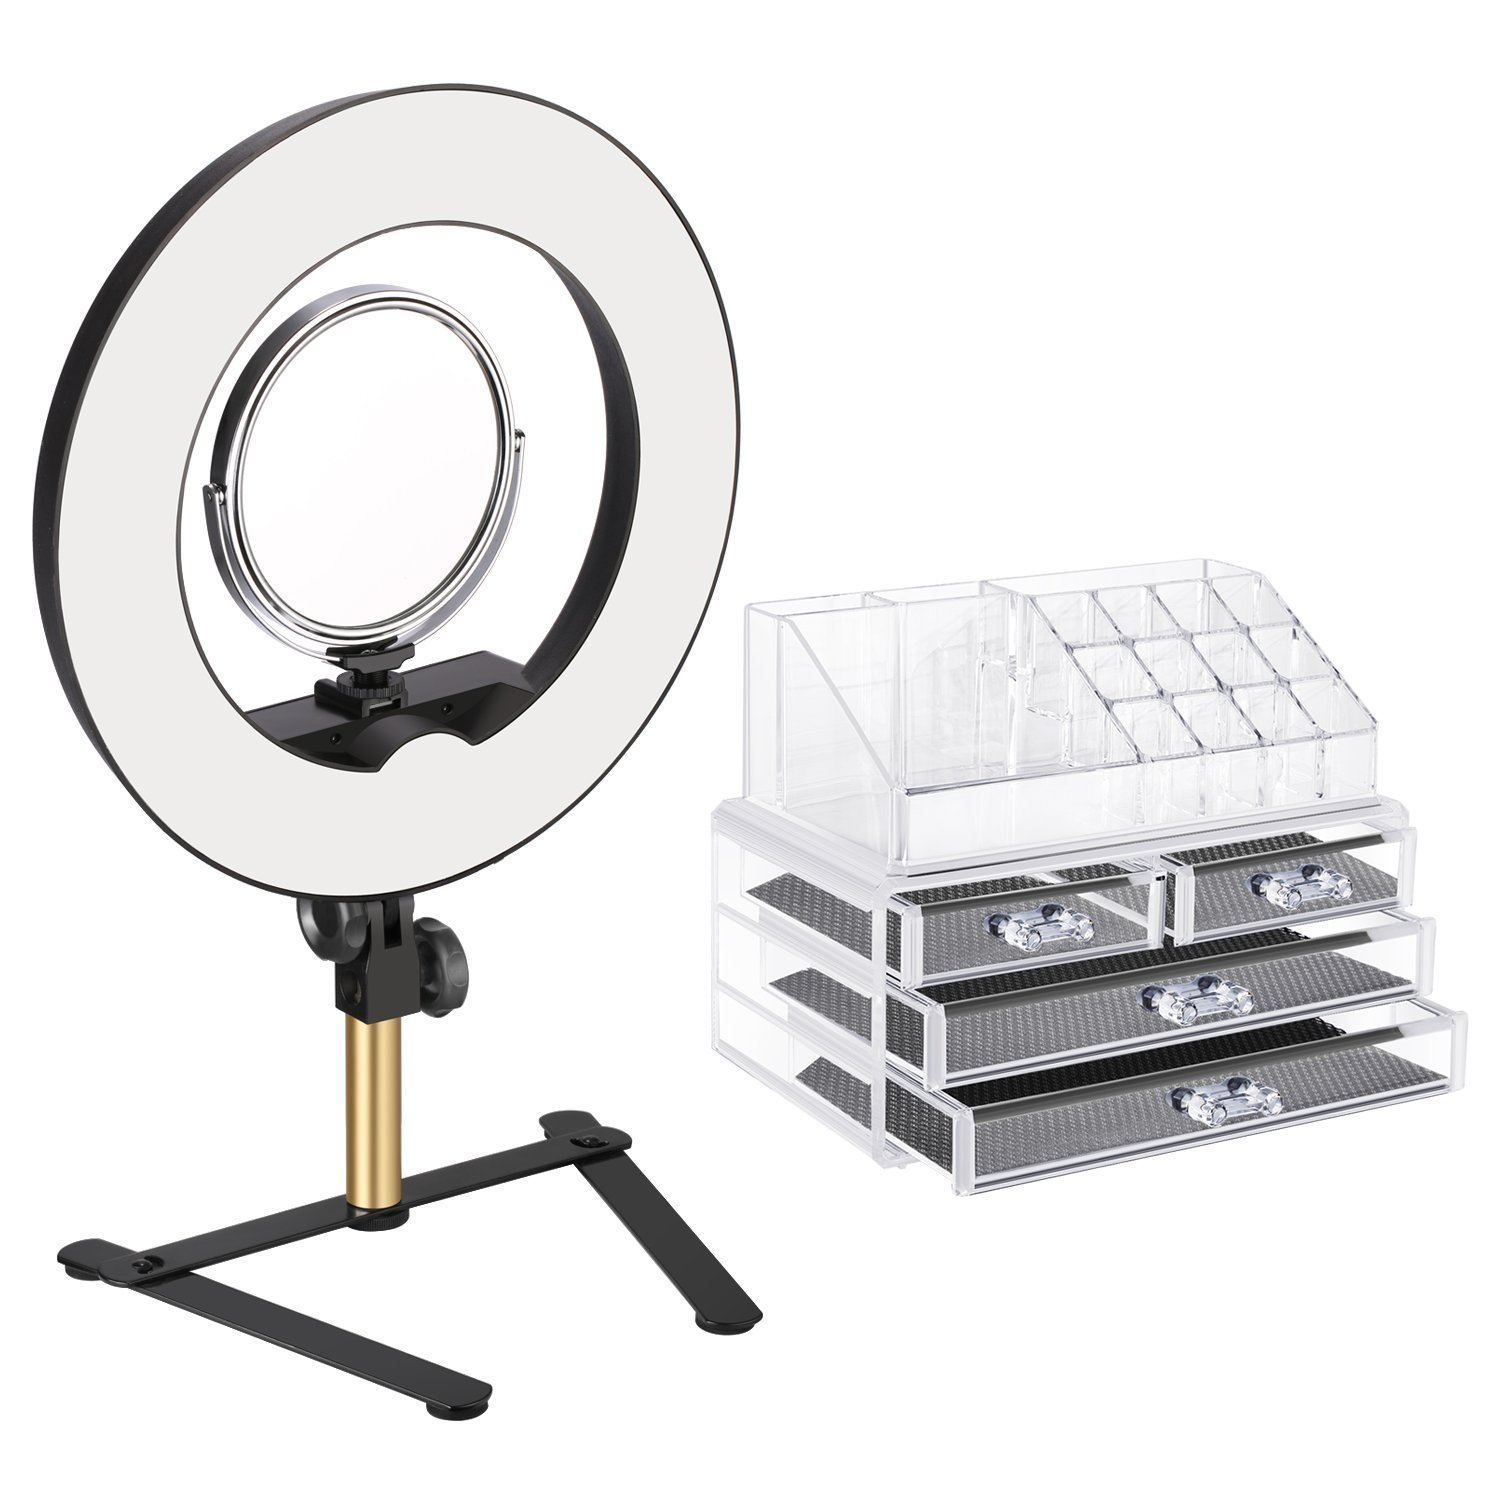 Neewer Tabletop Ring Light Makeup Kit: 14-inch Outer Dimmable LED Ring Light with 6-inch 2-Side Mirror,Desktop Support Stand,Cosmetic Storage Display Box for Beauty Portrait Video Shooting(US/EU Plug)